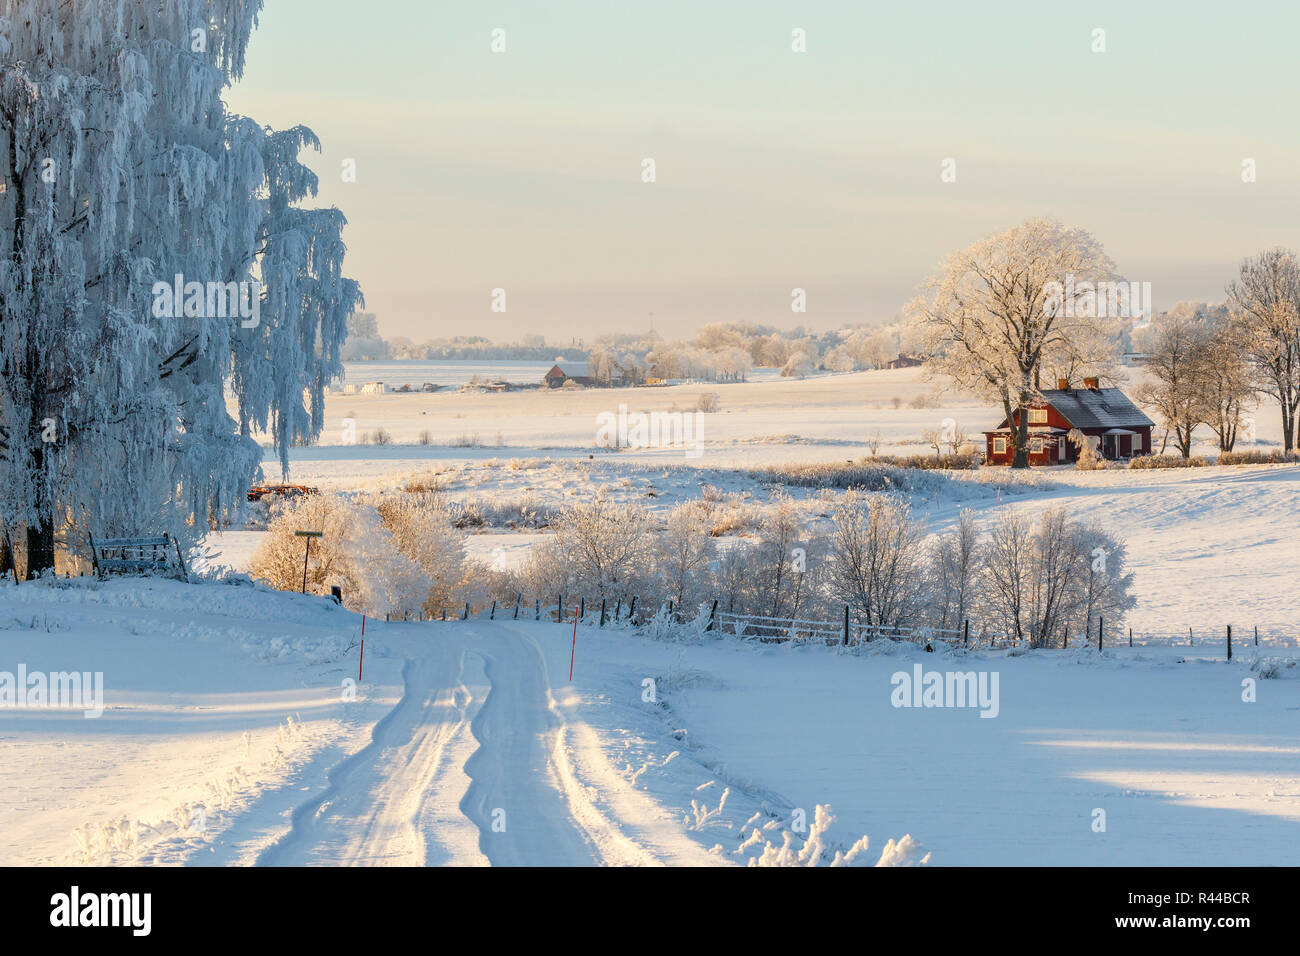 Snowy winter road in a rural landscape - Stock Image